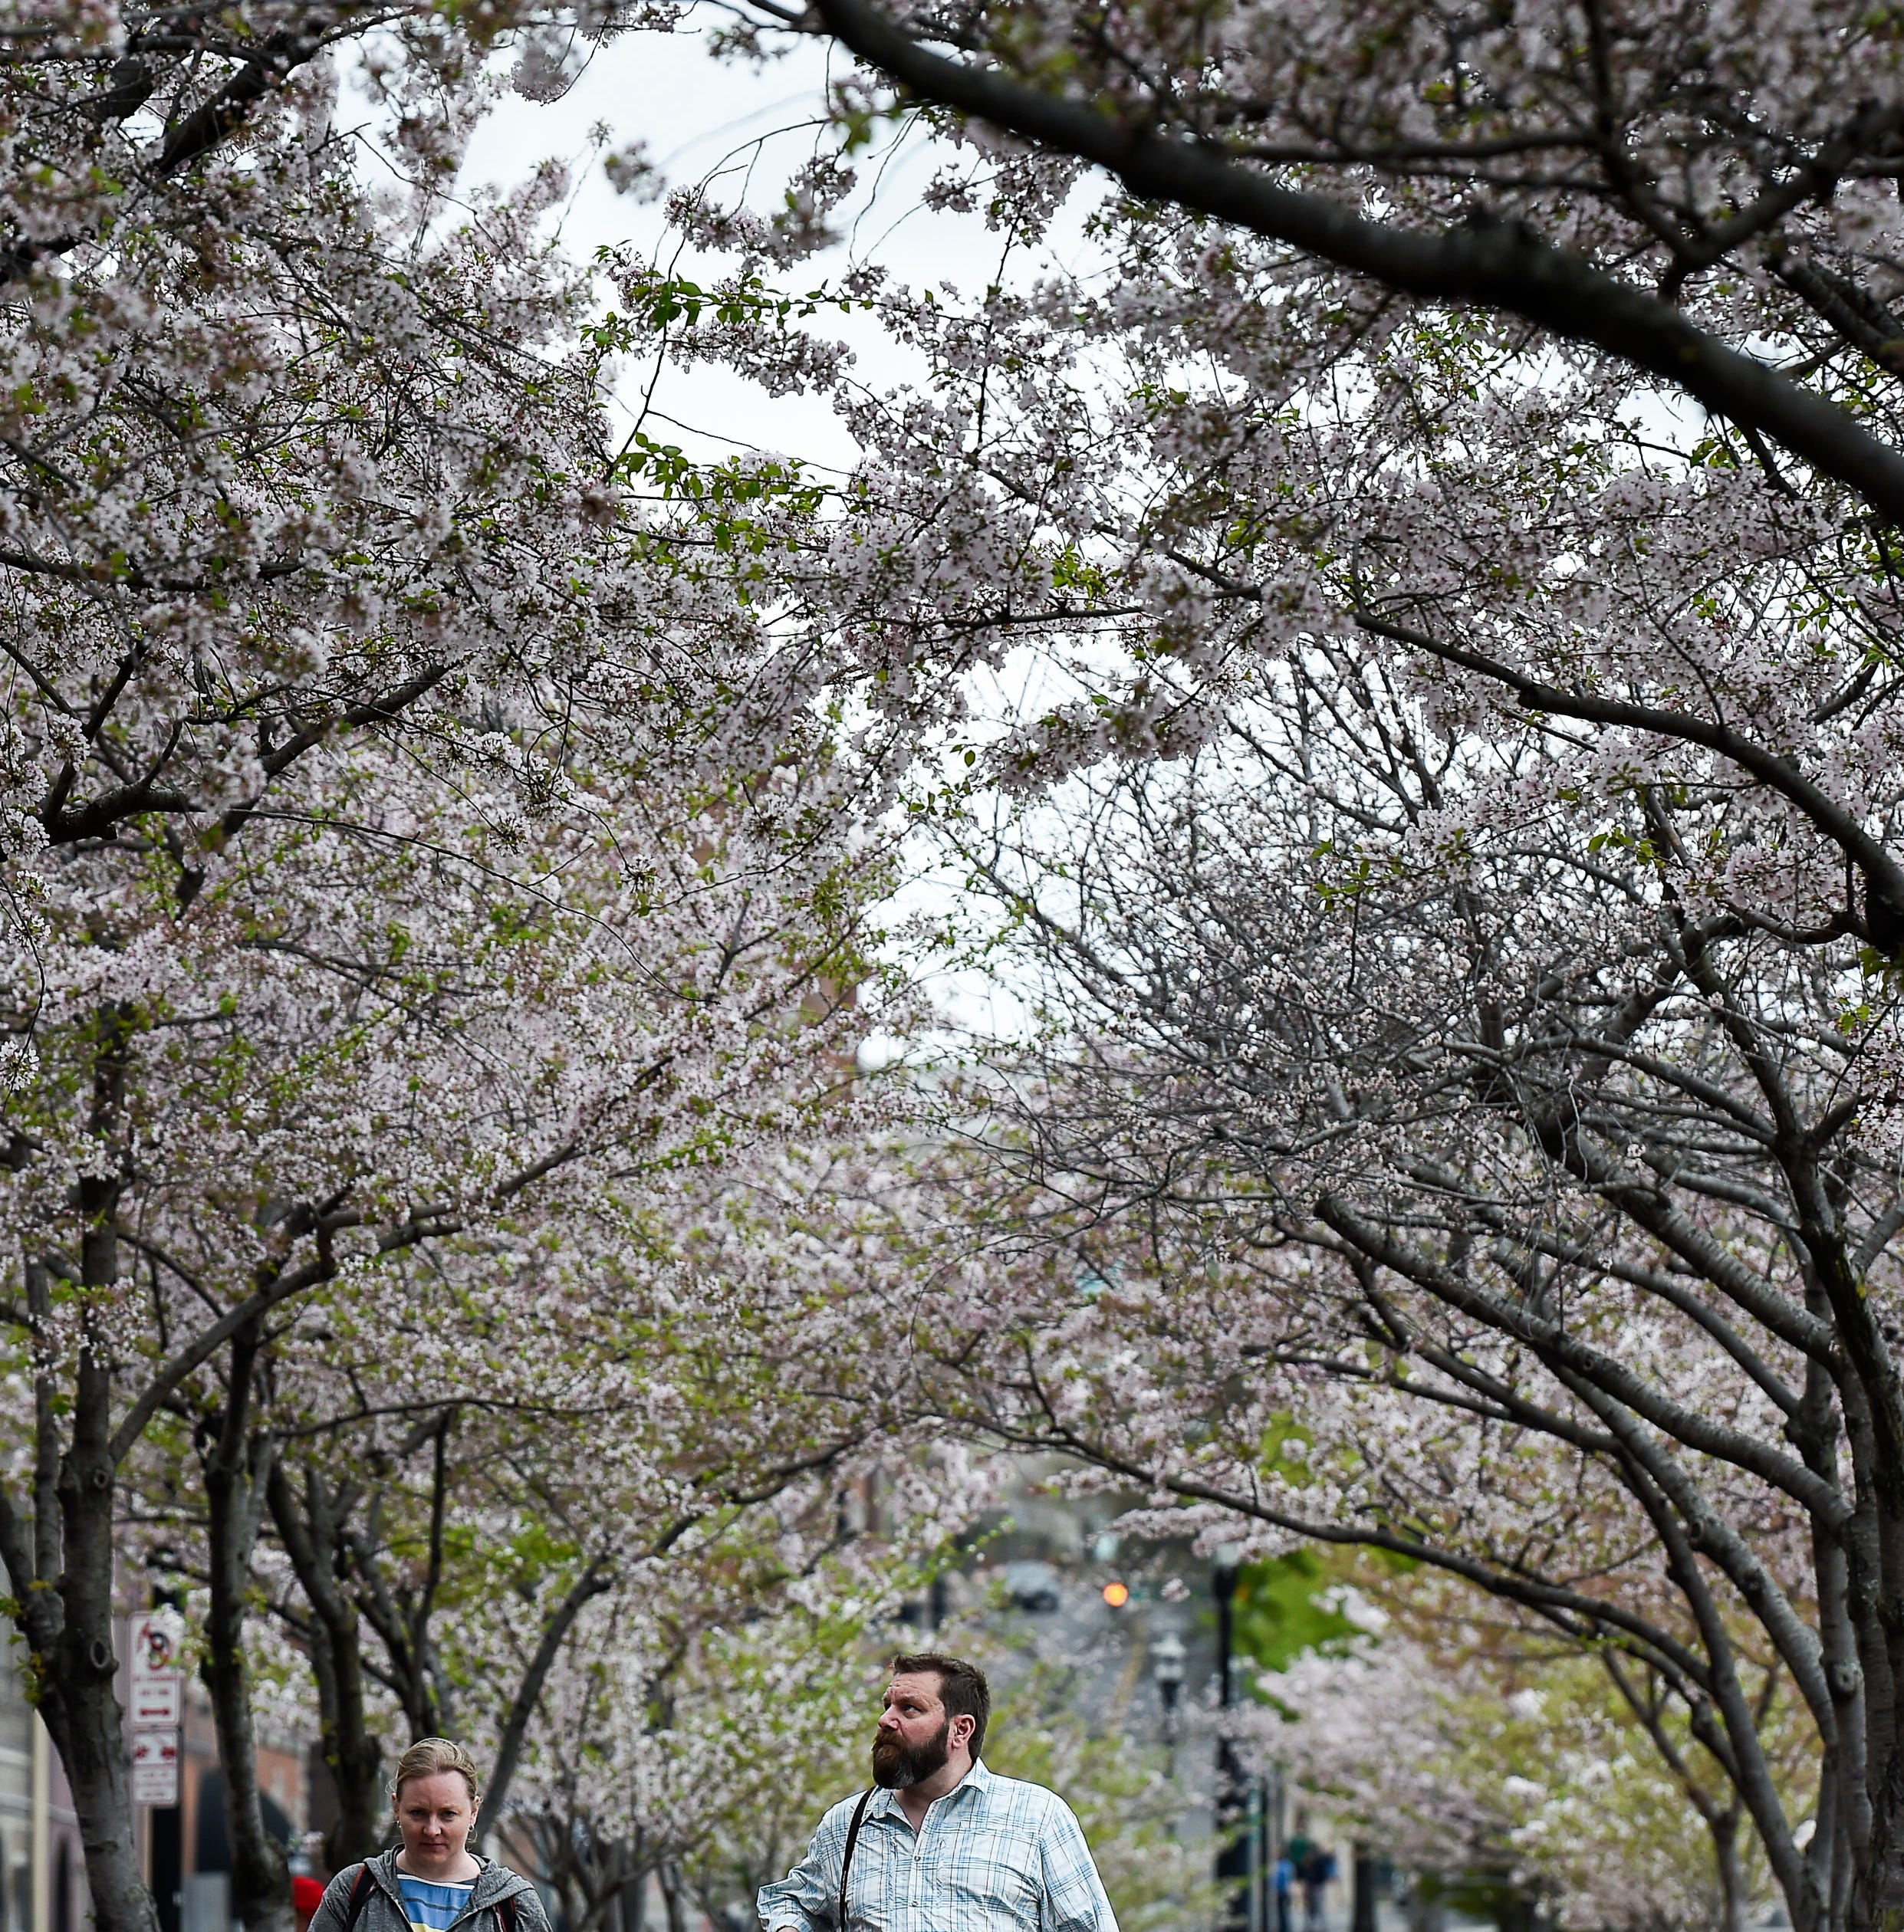 Nashville's plan to cut down cherry trees for NFL draft met with outrage online